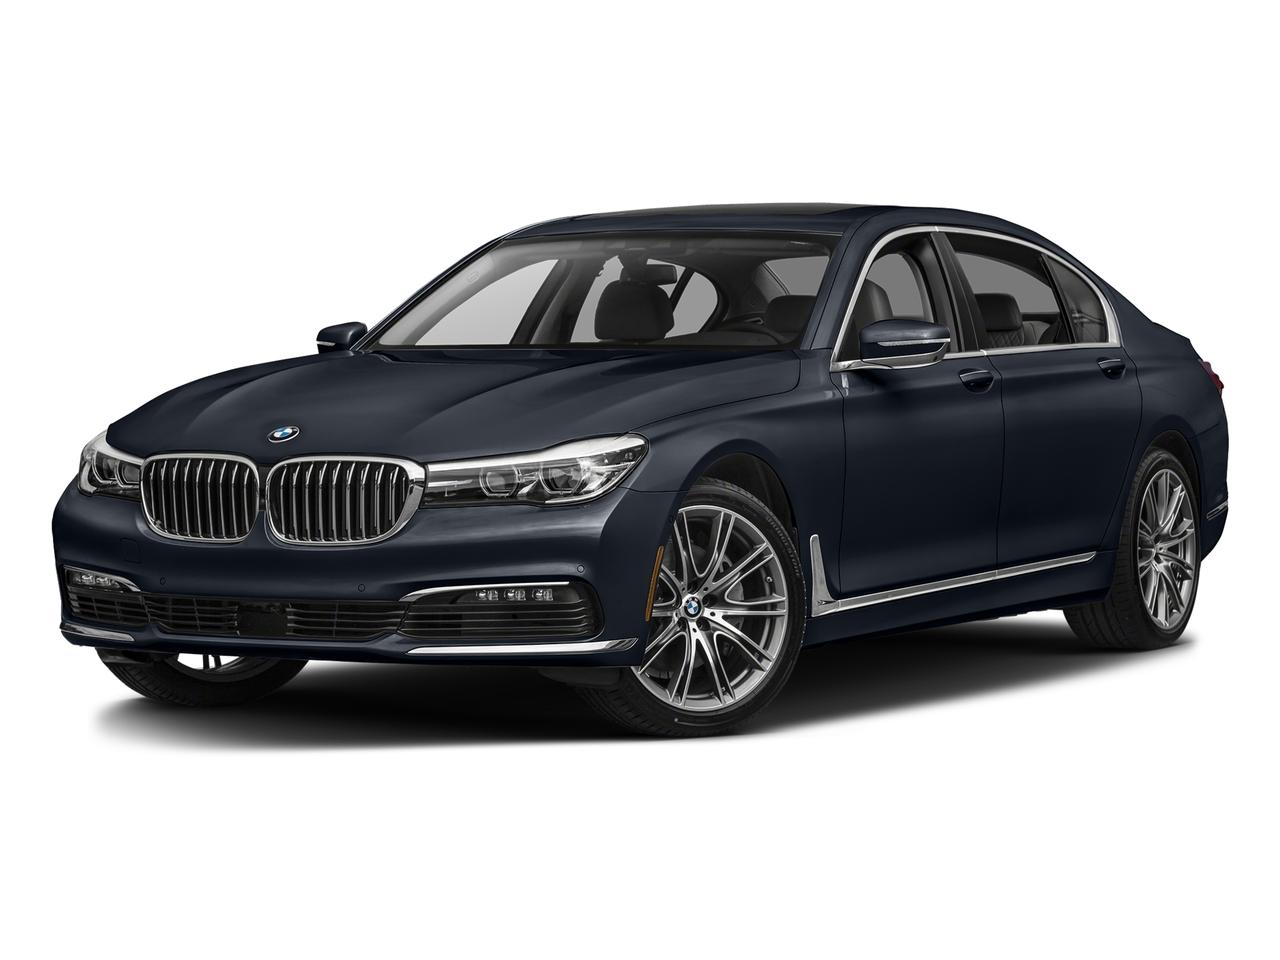 2017 BMW 740i Vehicle Photo in Charleston, SC 29407